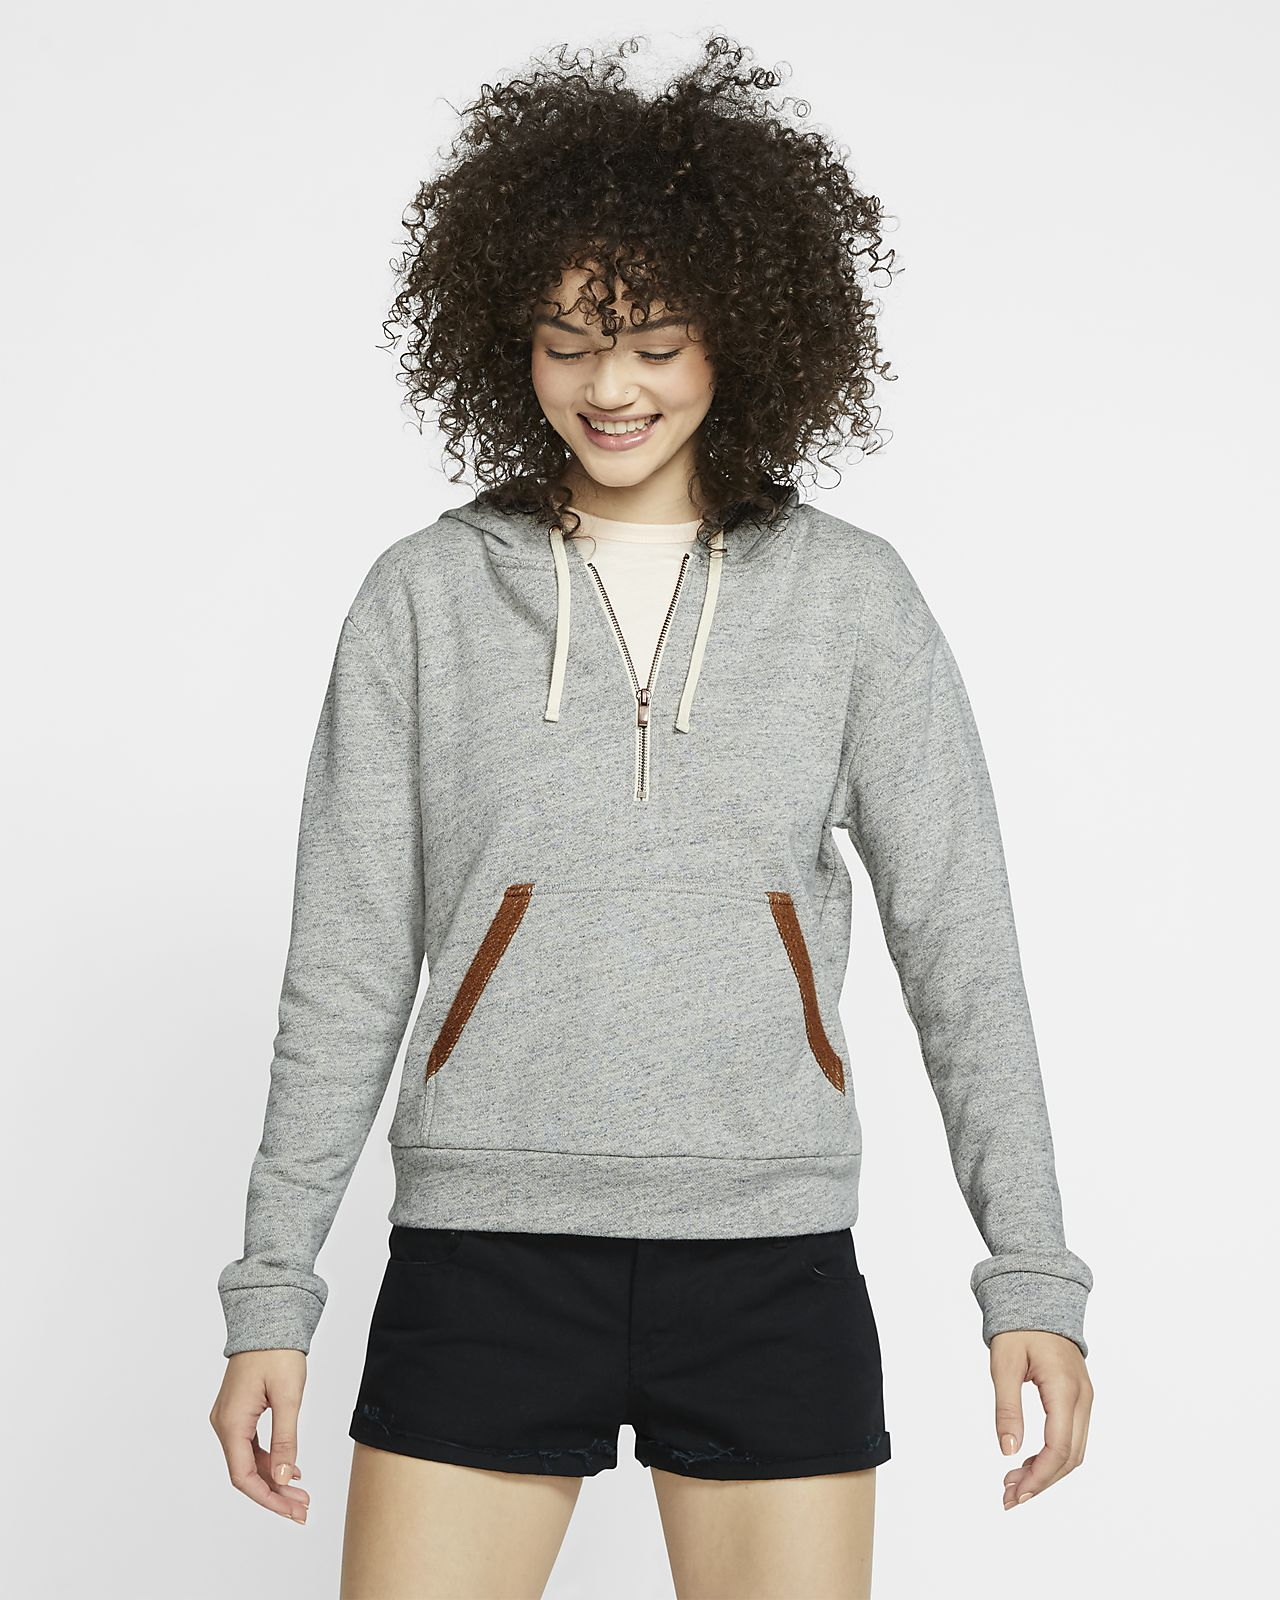 Hurley Two Faced Women's 1/2-Zip Fleece Top